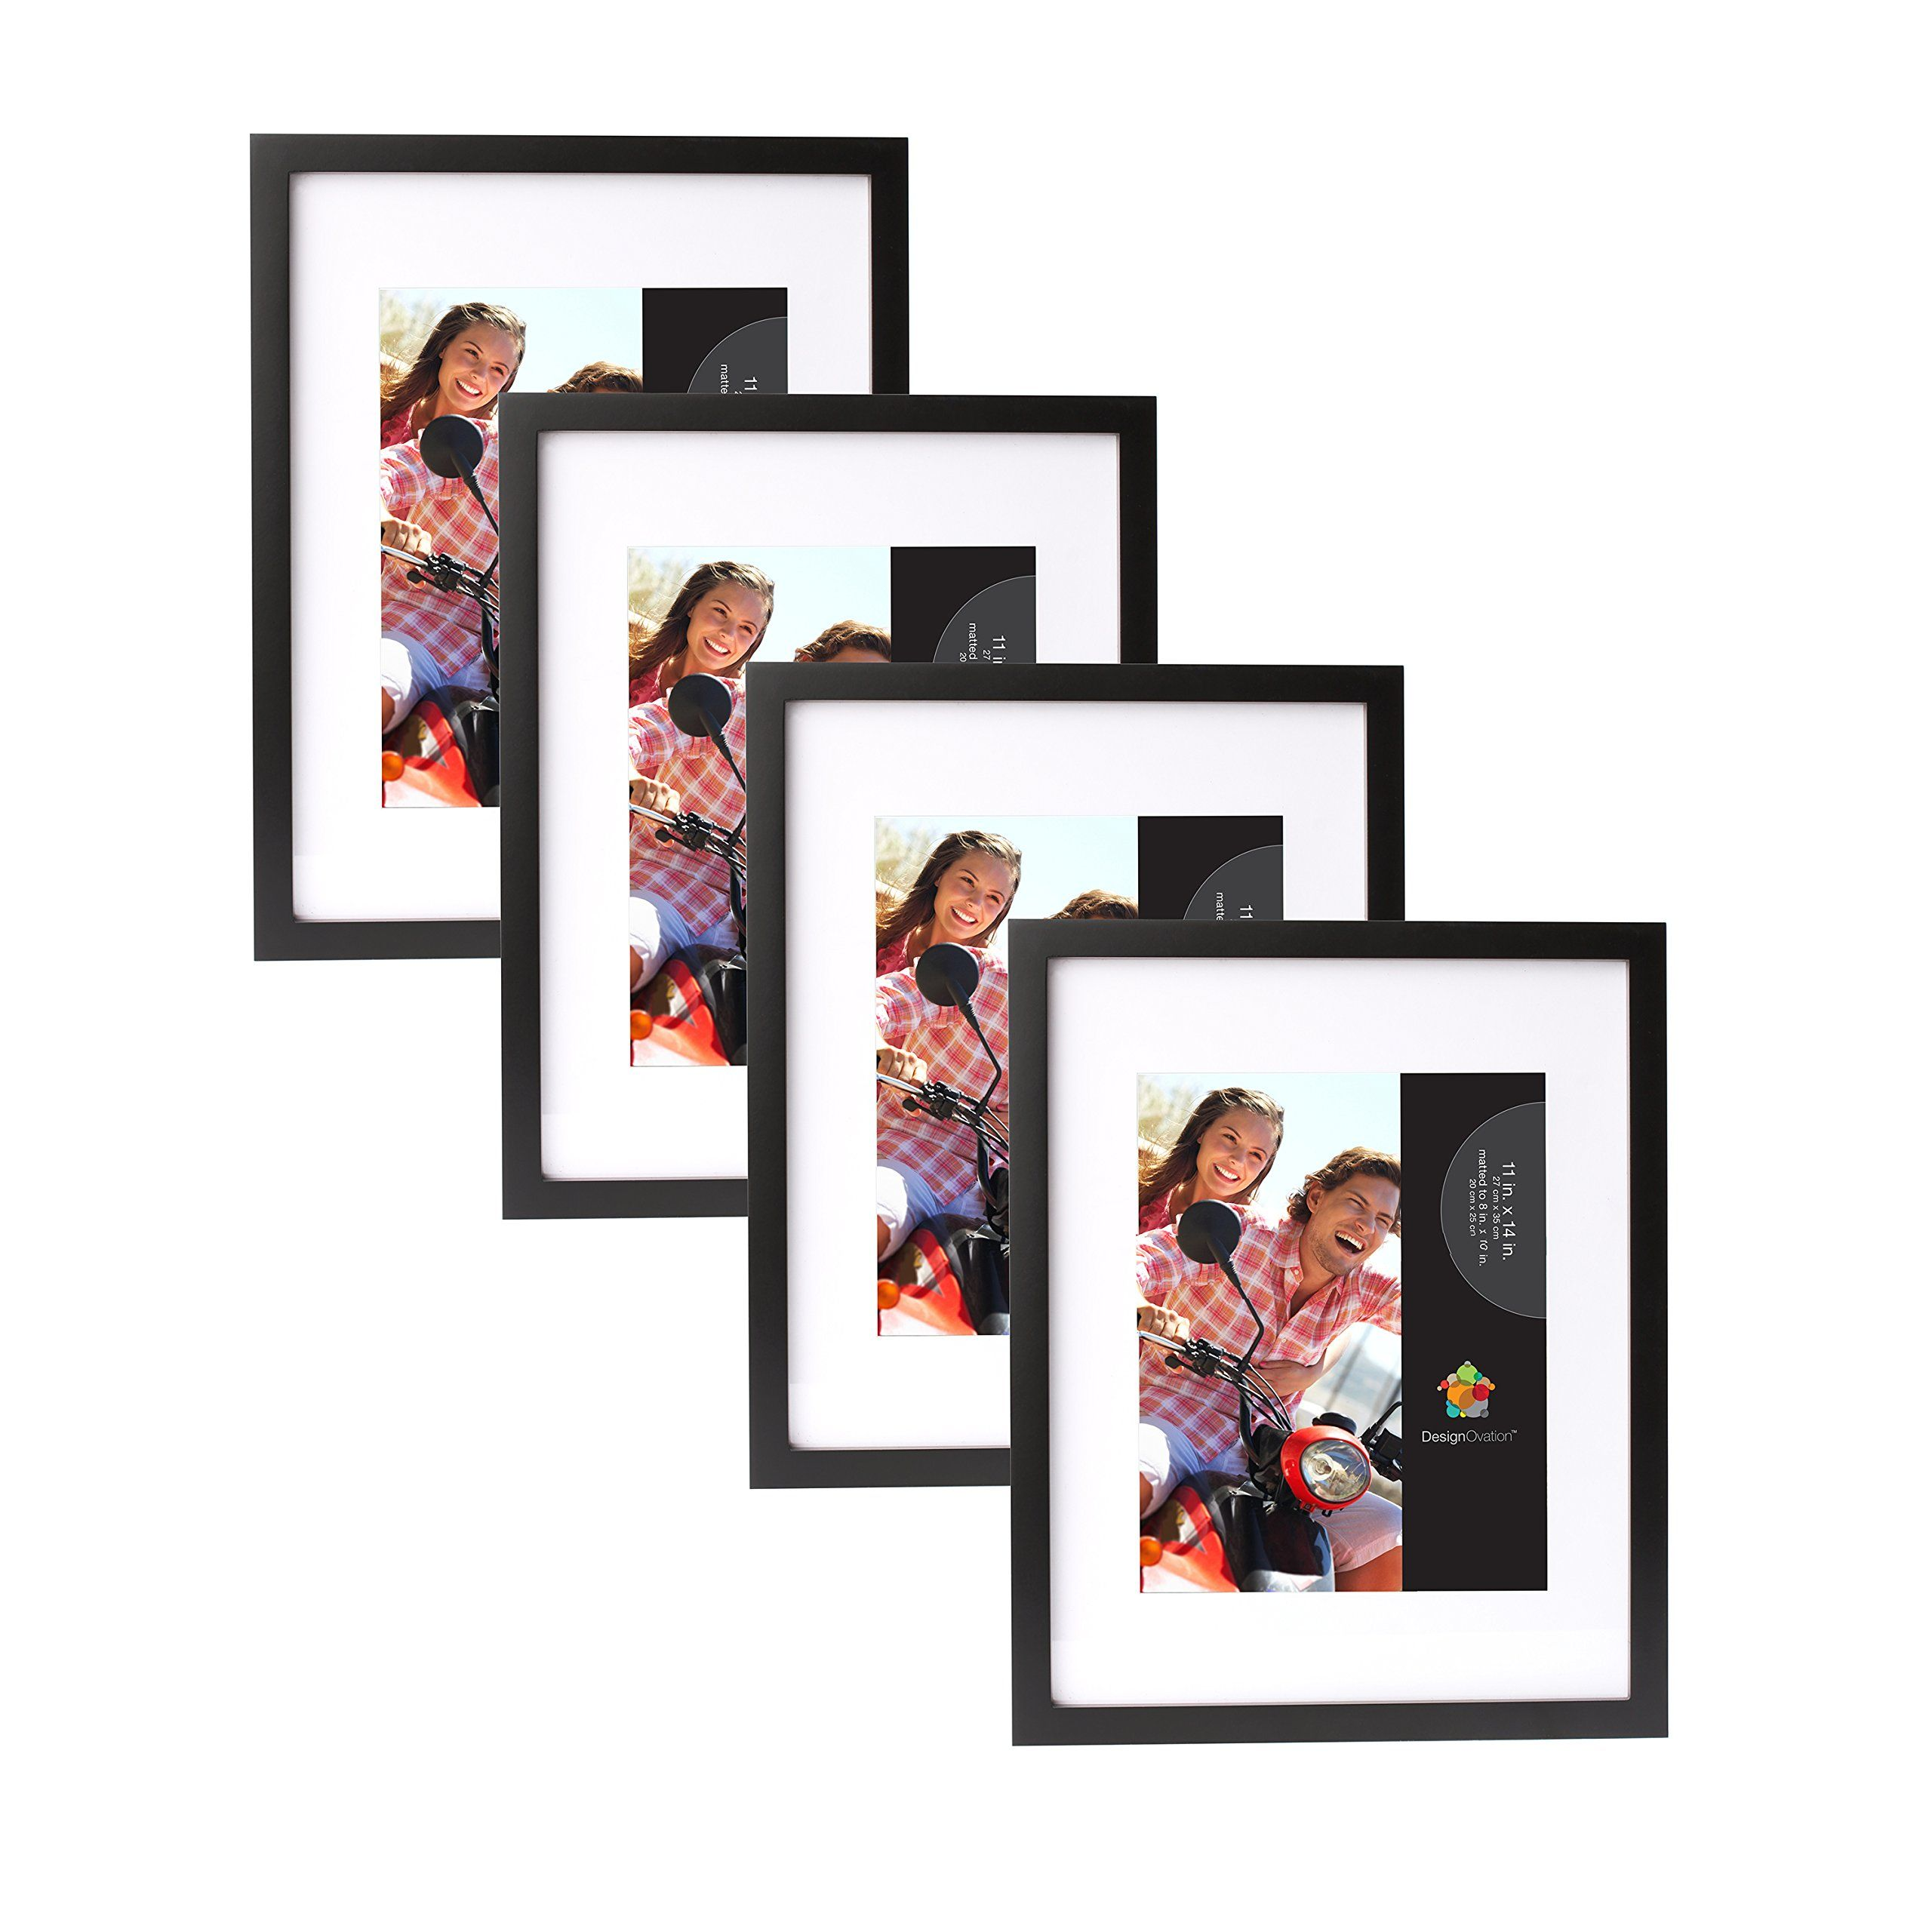 Gallery 11x14 matted to 8x10 Black Wood Picture Frame, Set of 4 ...